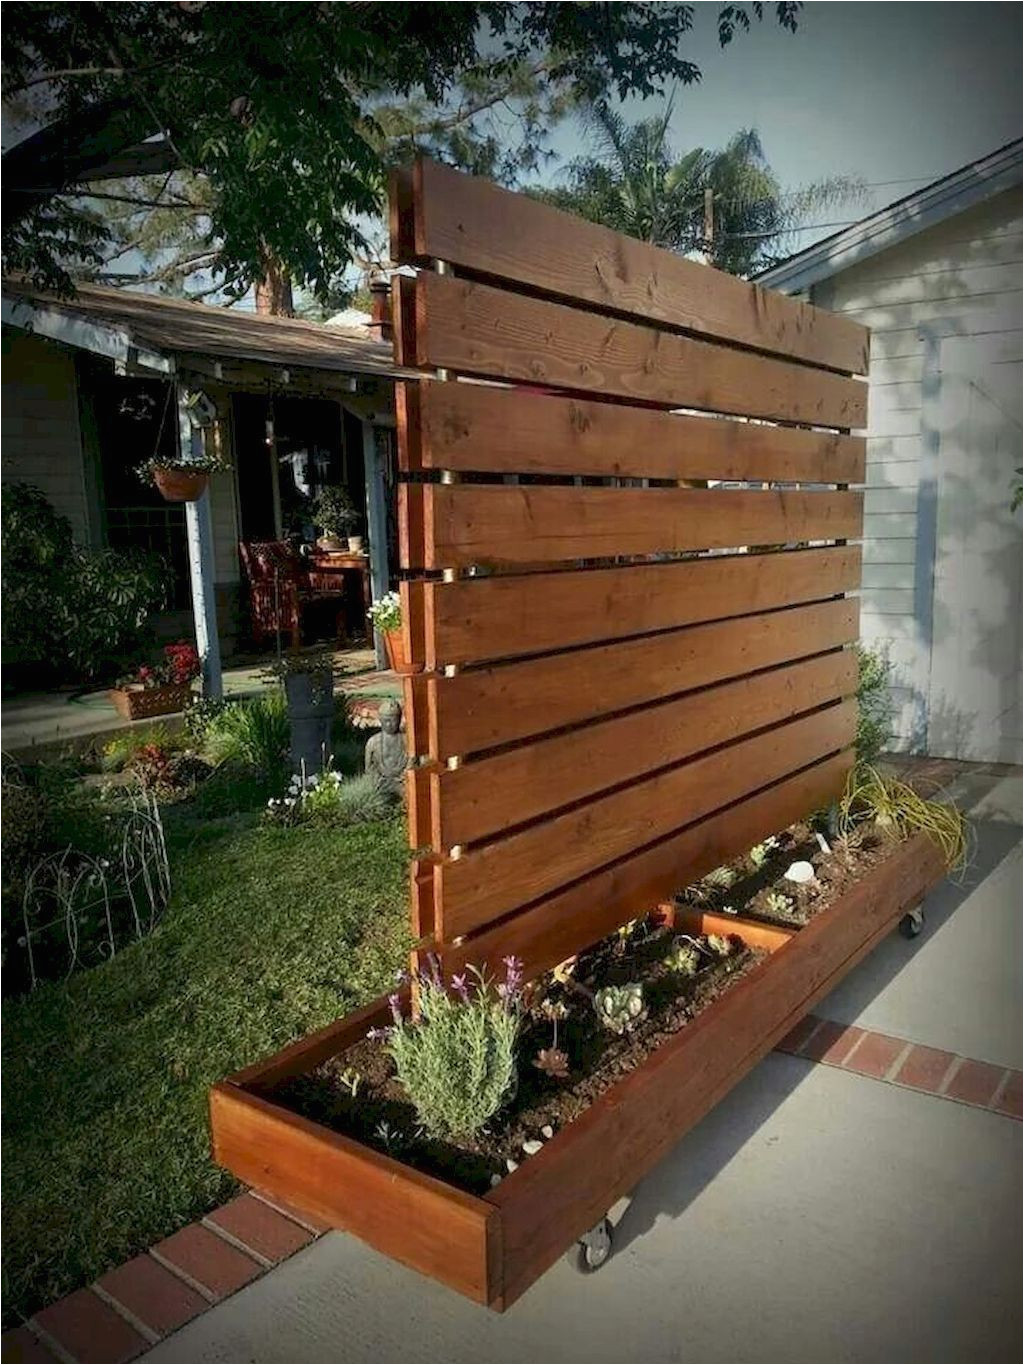 great and cheap privacy fence ideas for your home fence designs for front yard and backyard include horizontal lattice top brick and metal styles much